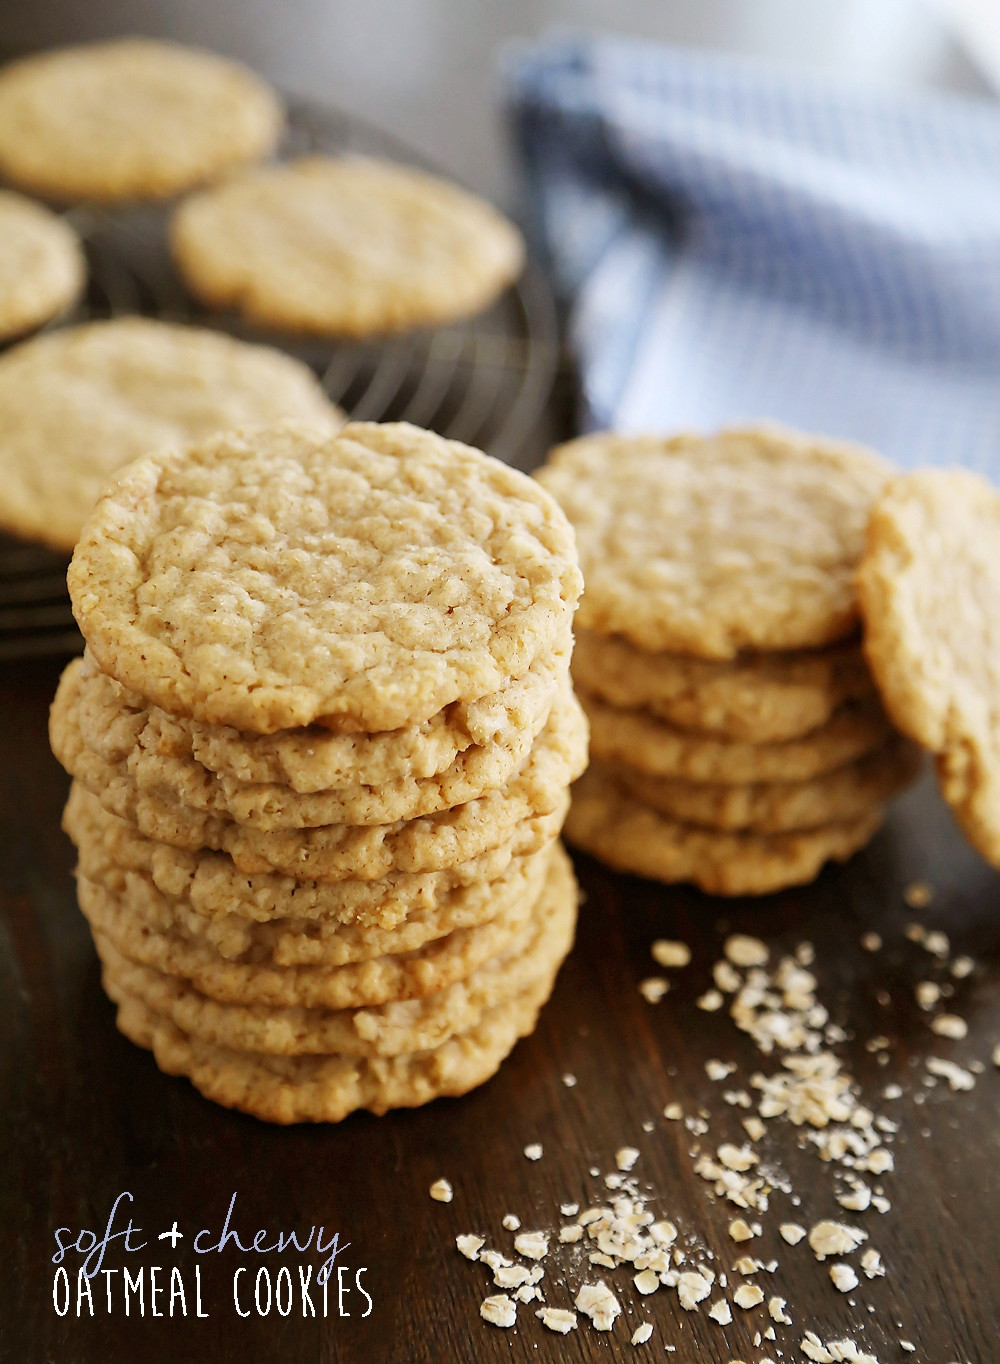 Chewy Oatmeal Cookies Recipe  Old Fashioned Soft and Chewy Oatmeal Cookies